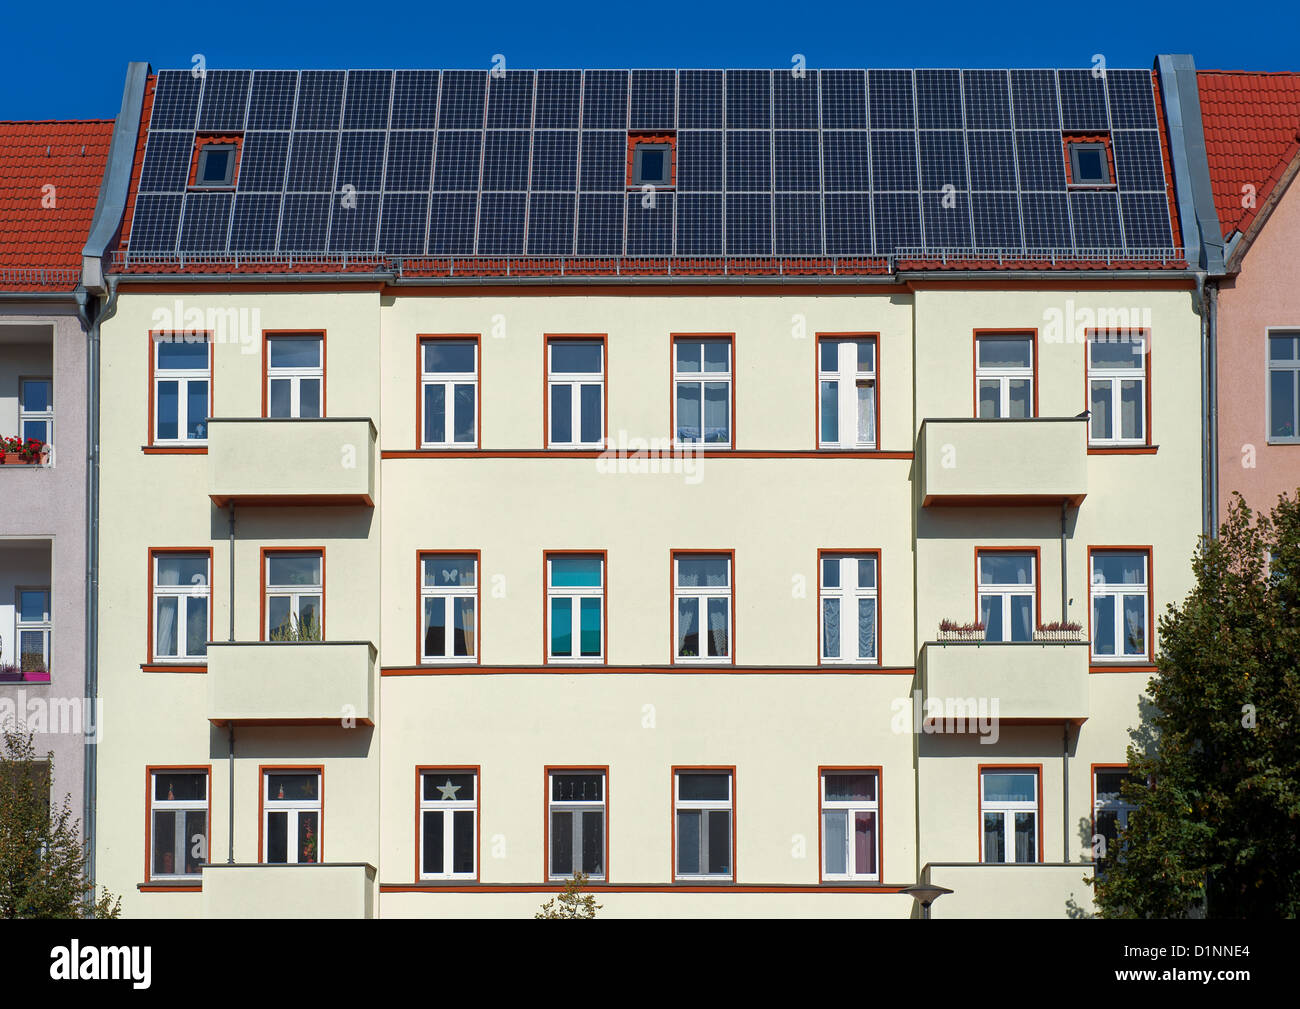 Apartment Building Roof apartment buildings with solar panels stock photo, royalty free